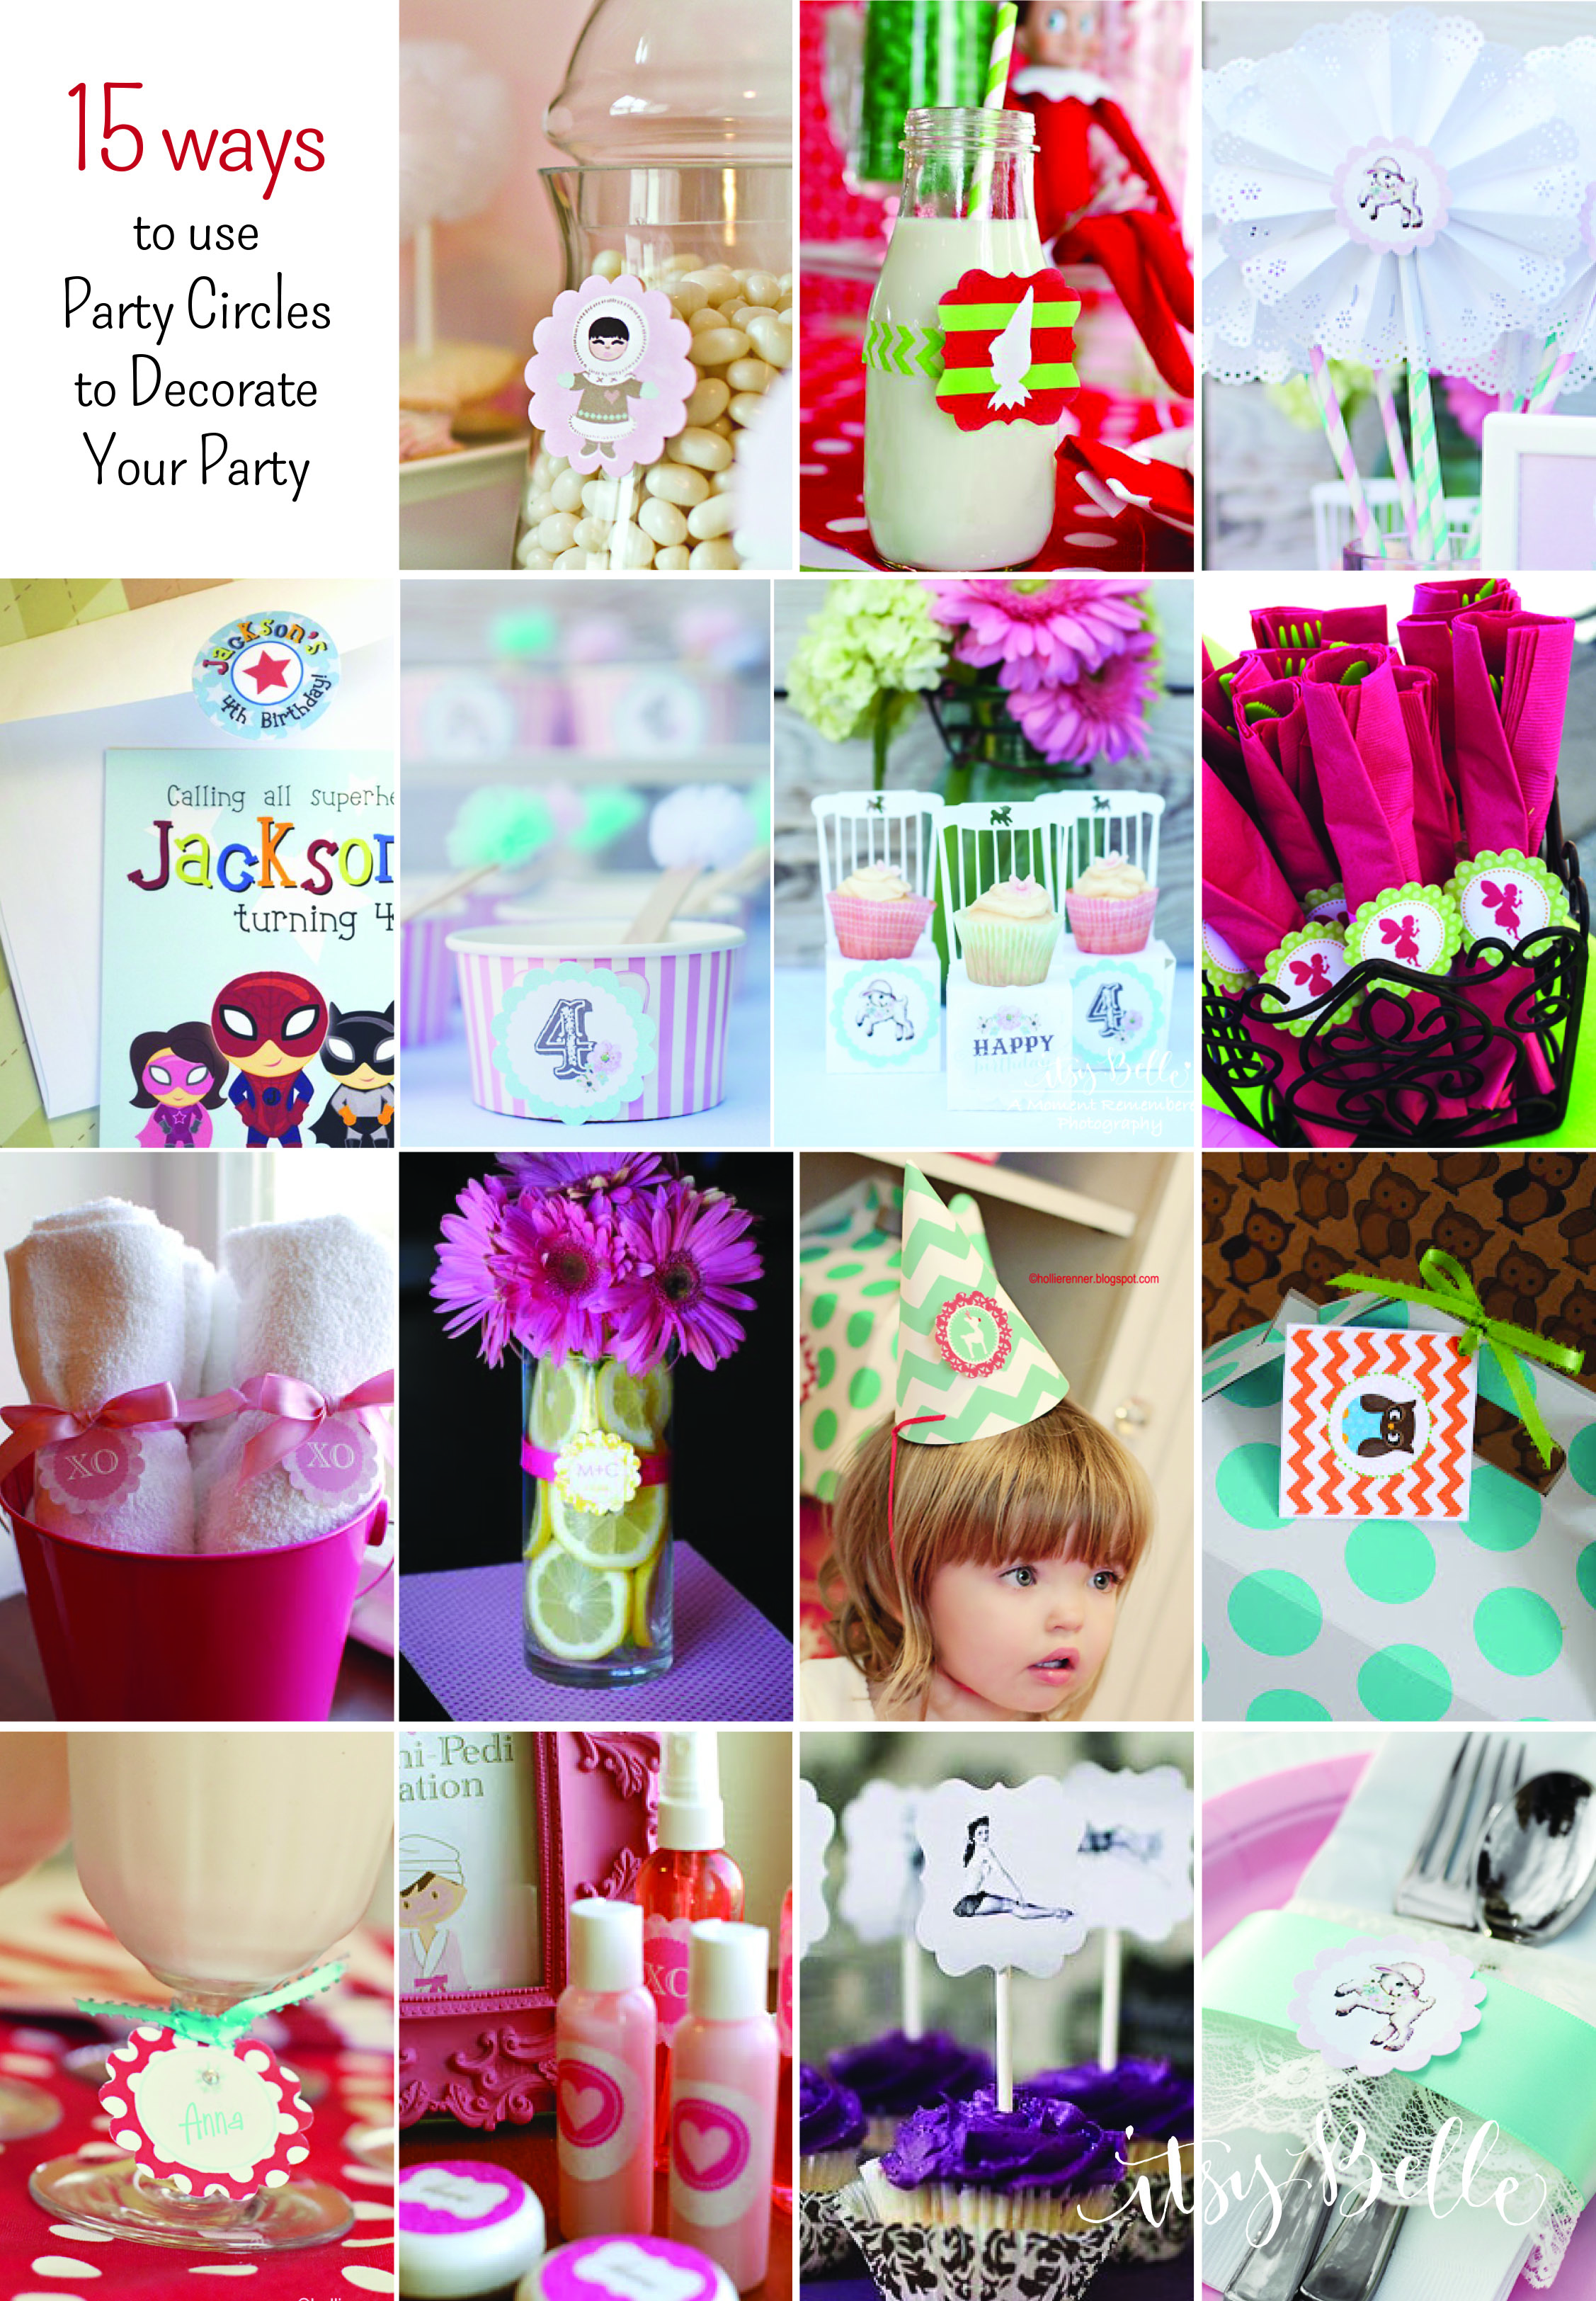 diy party ideas party favors ideas